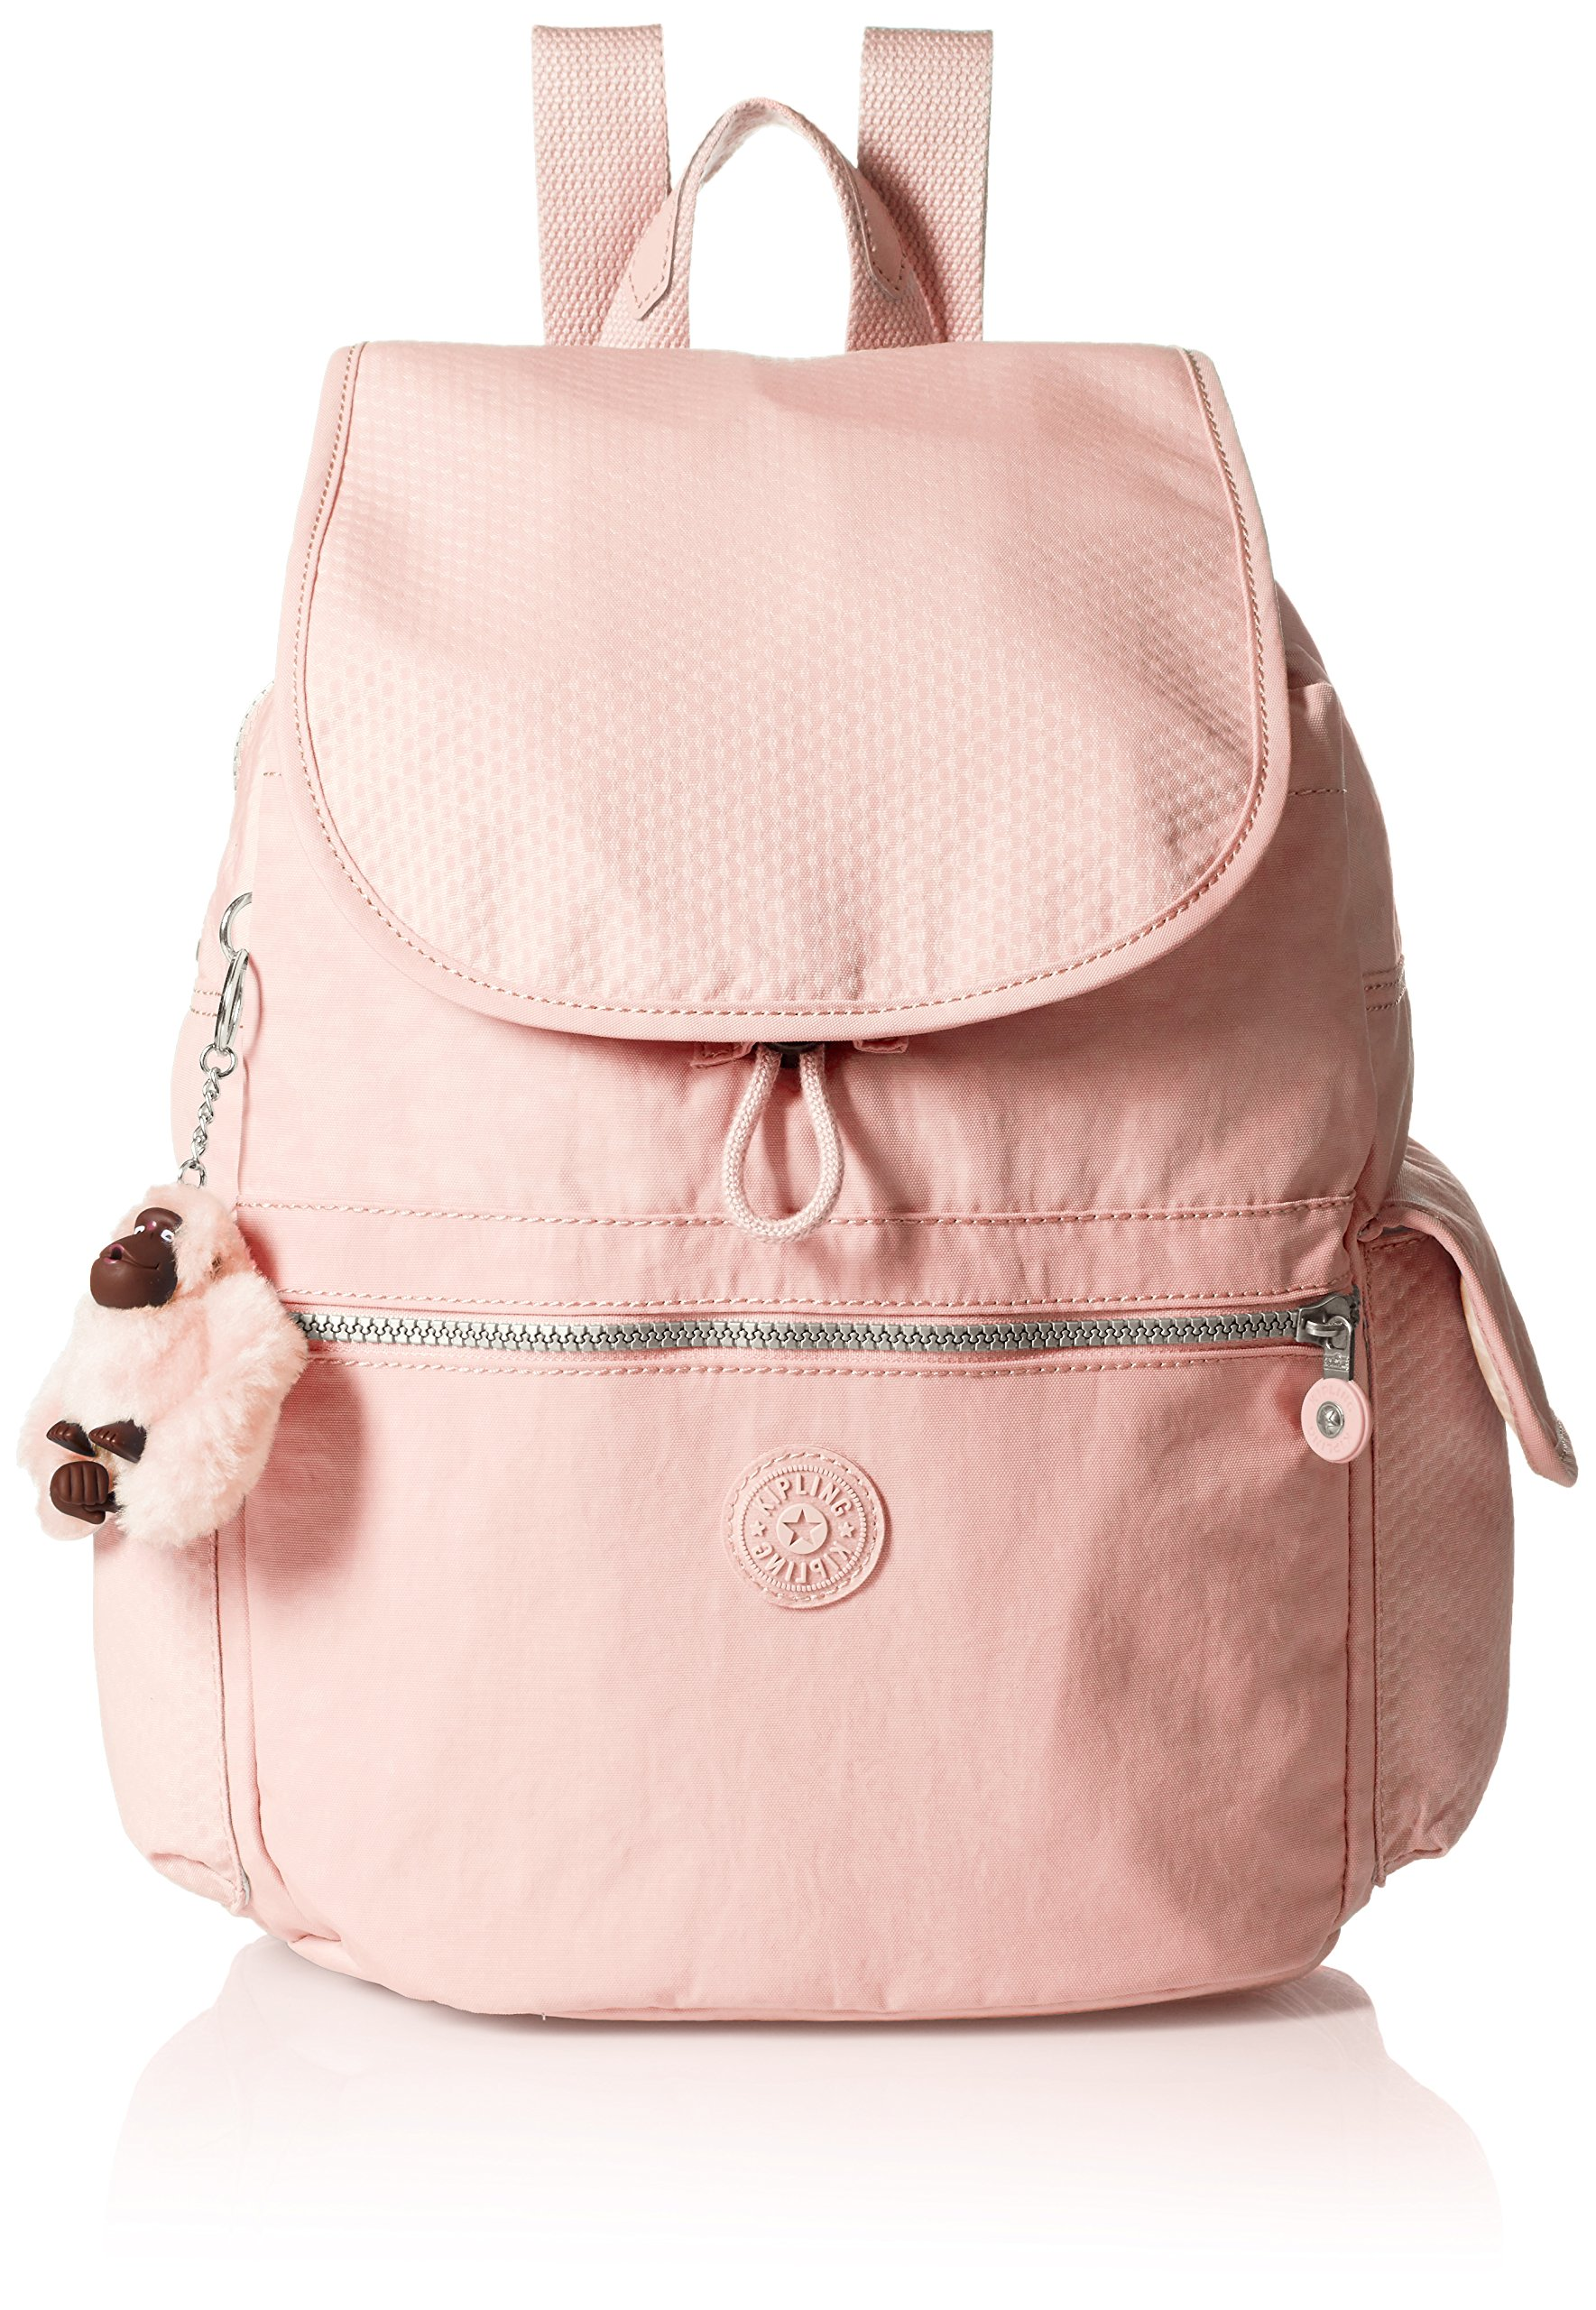 Kipling Women's Ravier Medium Solid Backpack, Dtssrppkco by Kipling